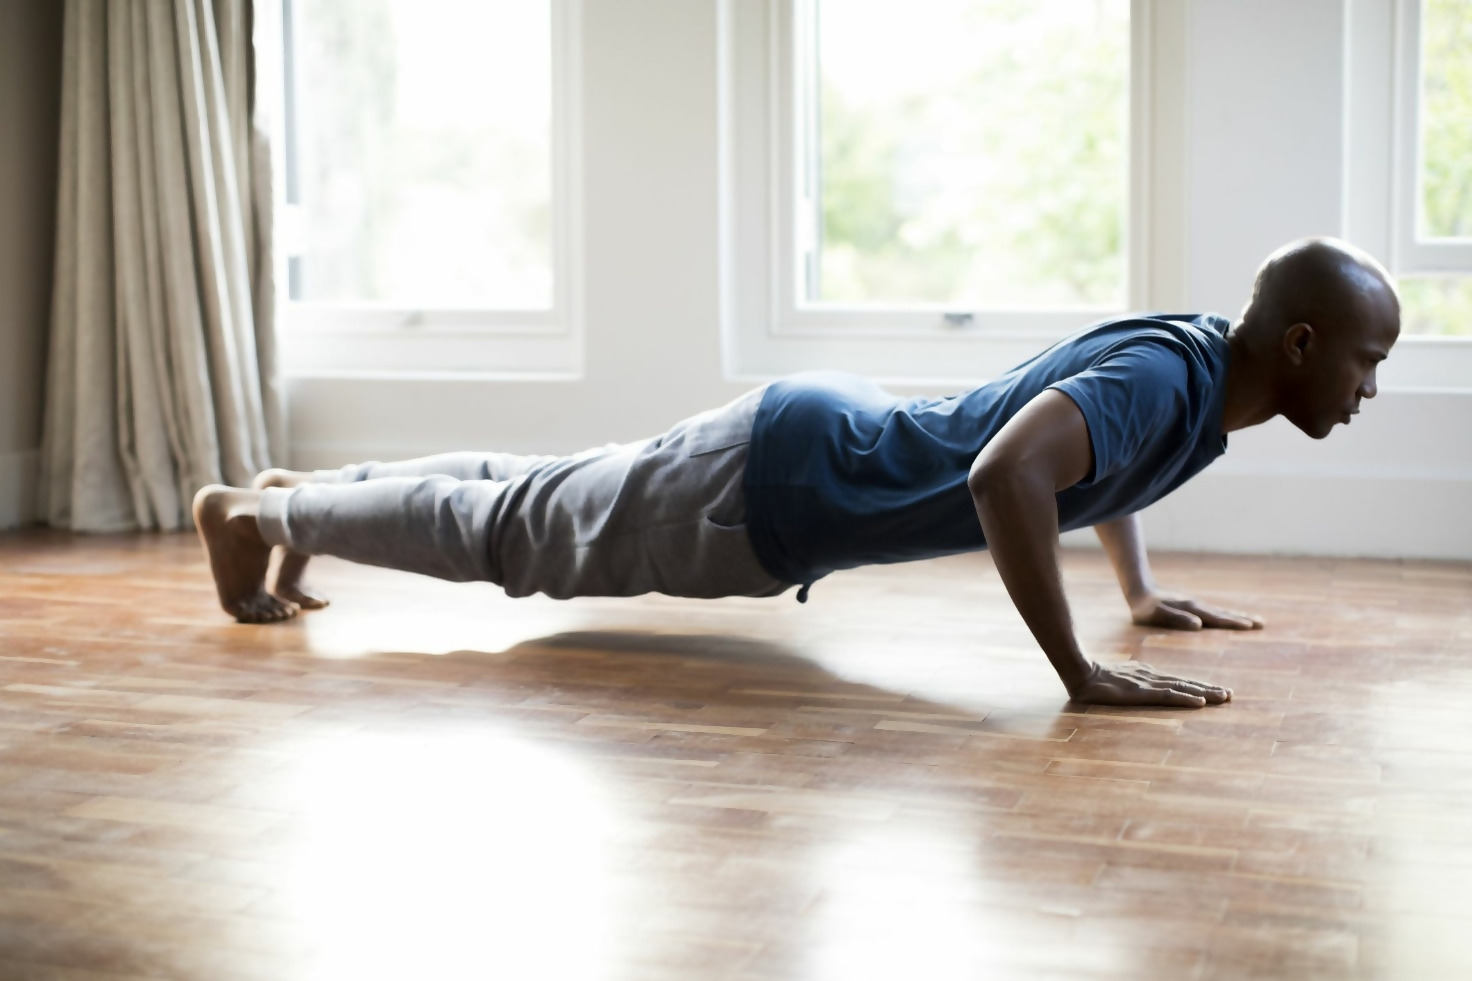 The Simple Ways To Exercise At Home